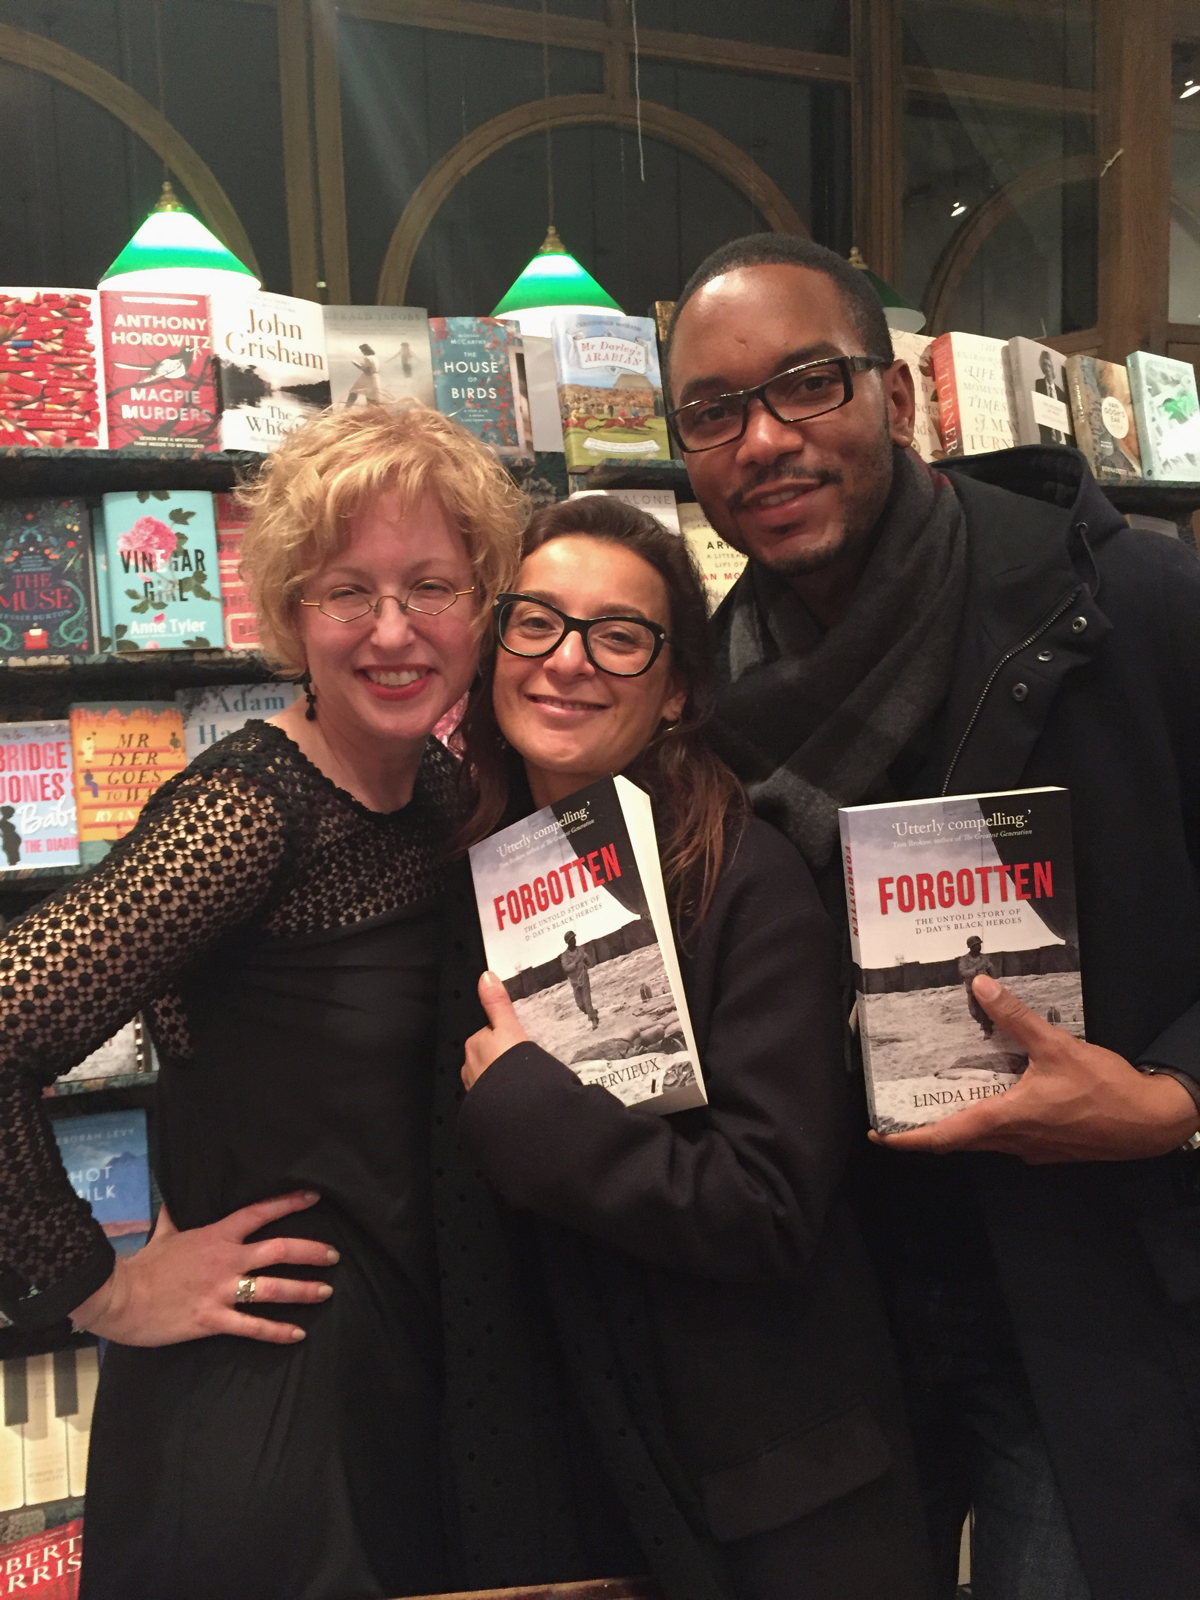 Linda with Orianna and Lionel at the FORGOTTEN launch party at Daunt Books Hampstead.